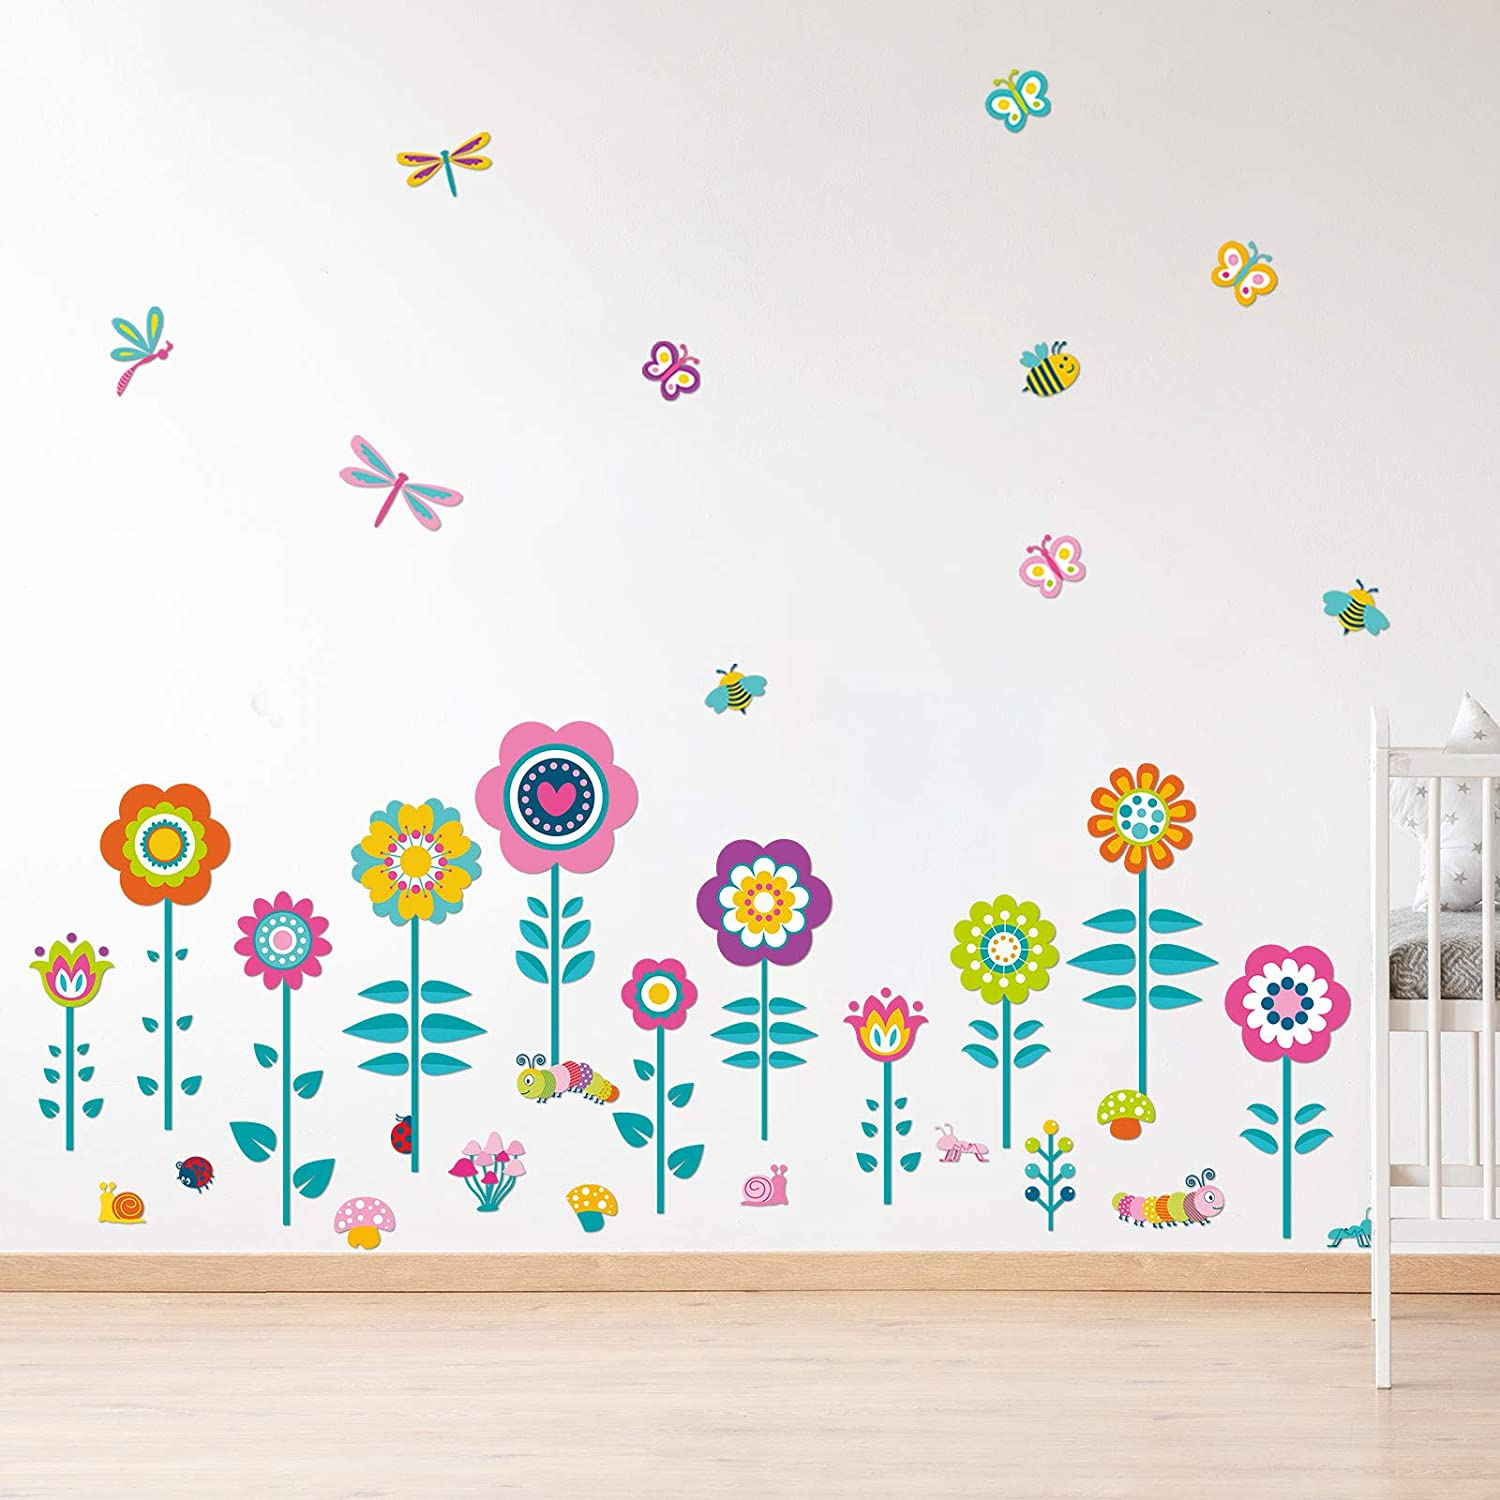 Garden Flower Wall Decals Flowers V Stick Popular brand Department store in the world and Peel Stickers